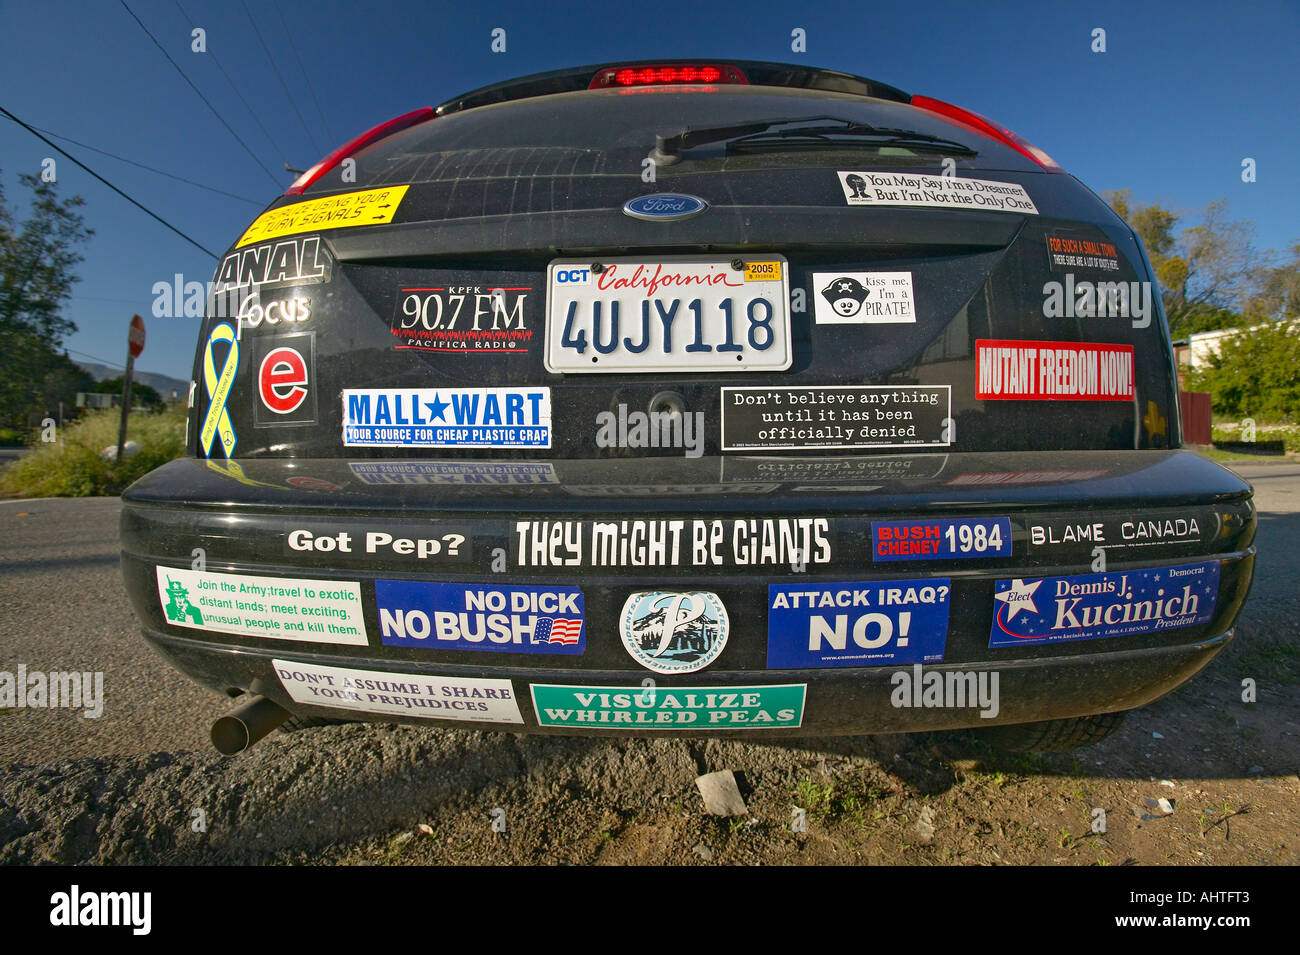 Car with political and social issues bumper stickers in Oak View California - Stock Image